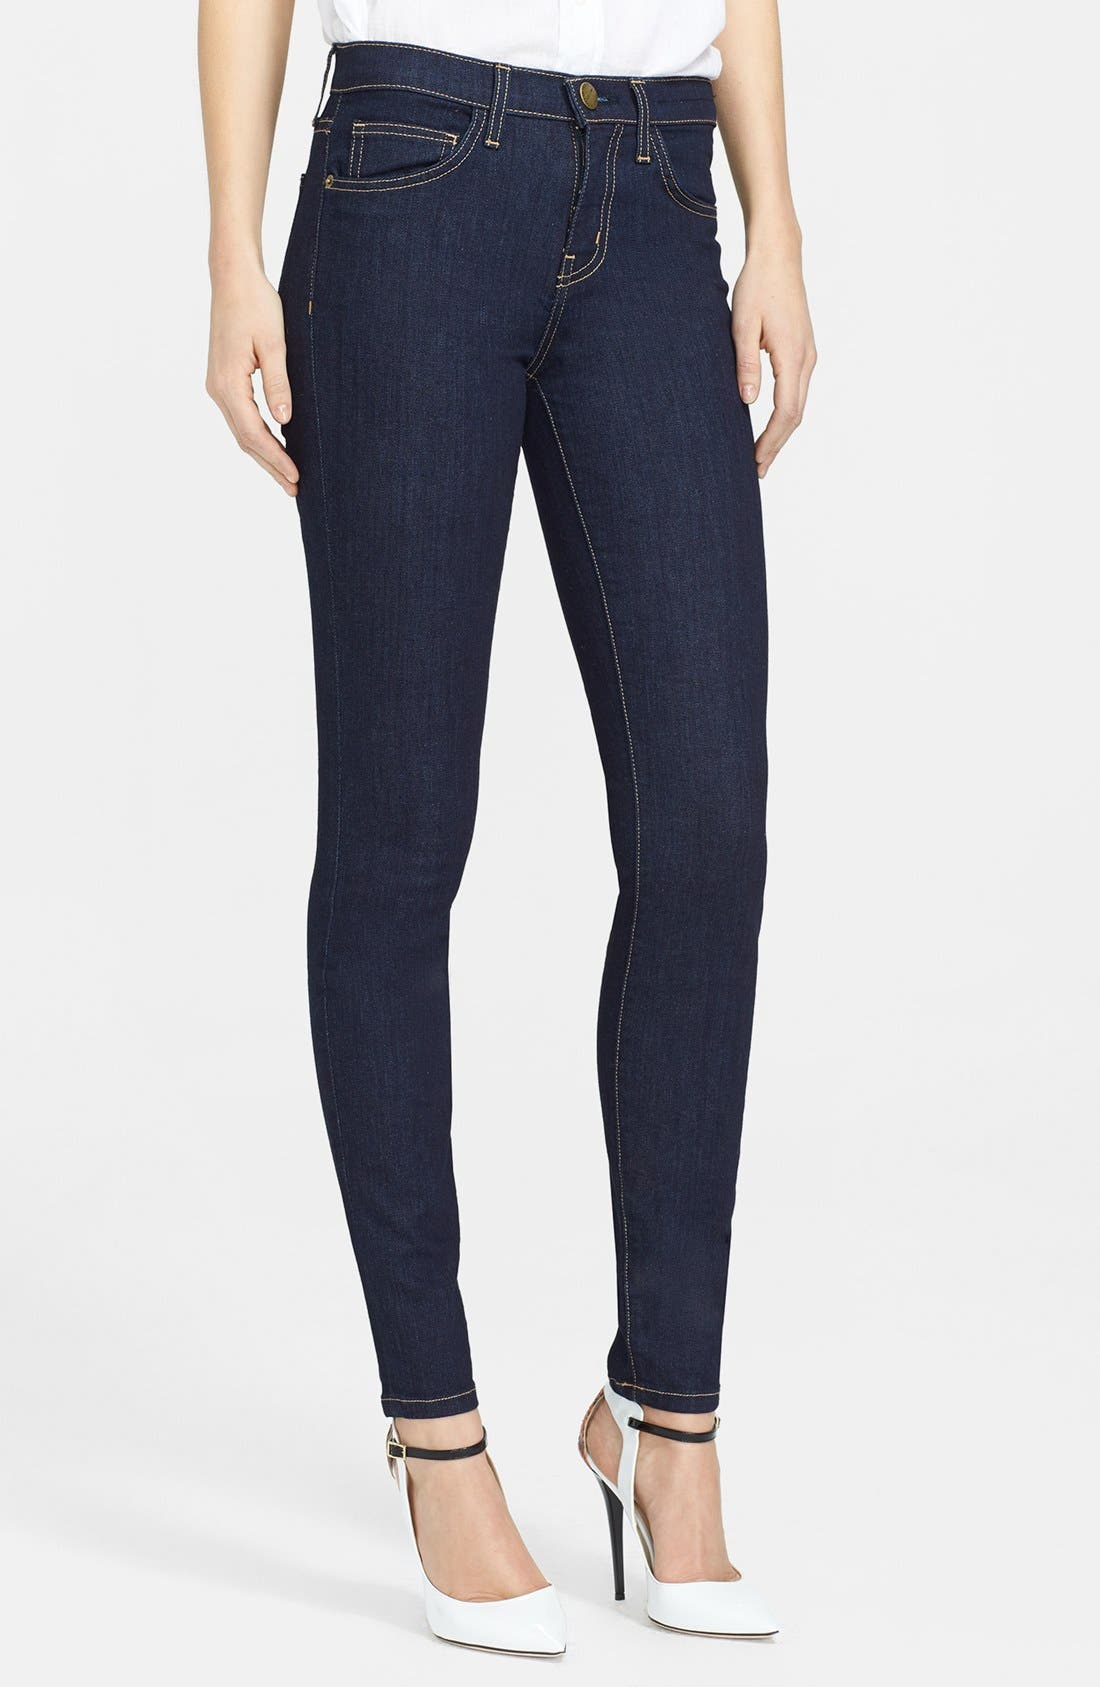 Main Image - Current/Elliott 'The High Waist' Skinny Jeans (Rinse) (Nordstrom Exclusive)